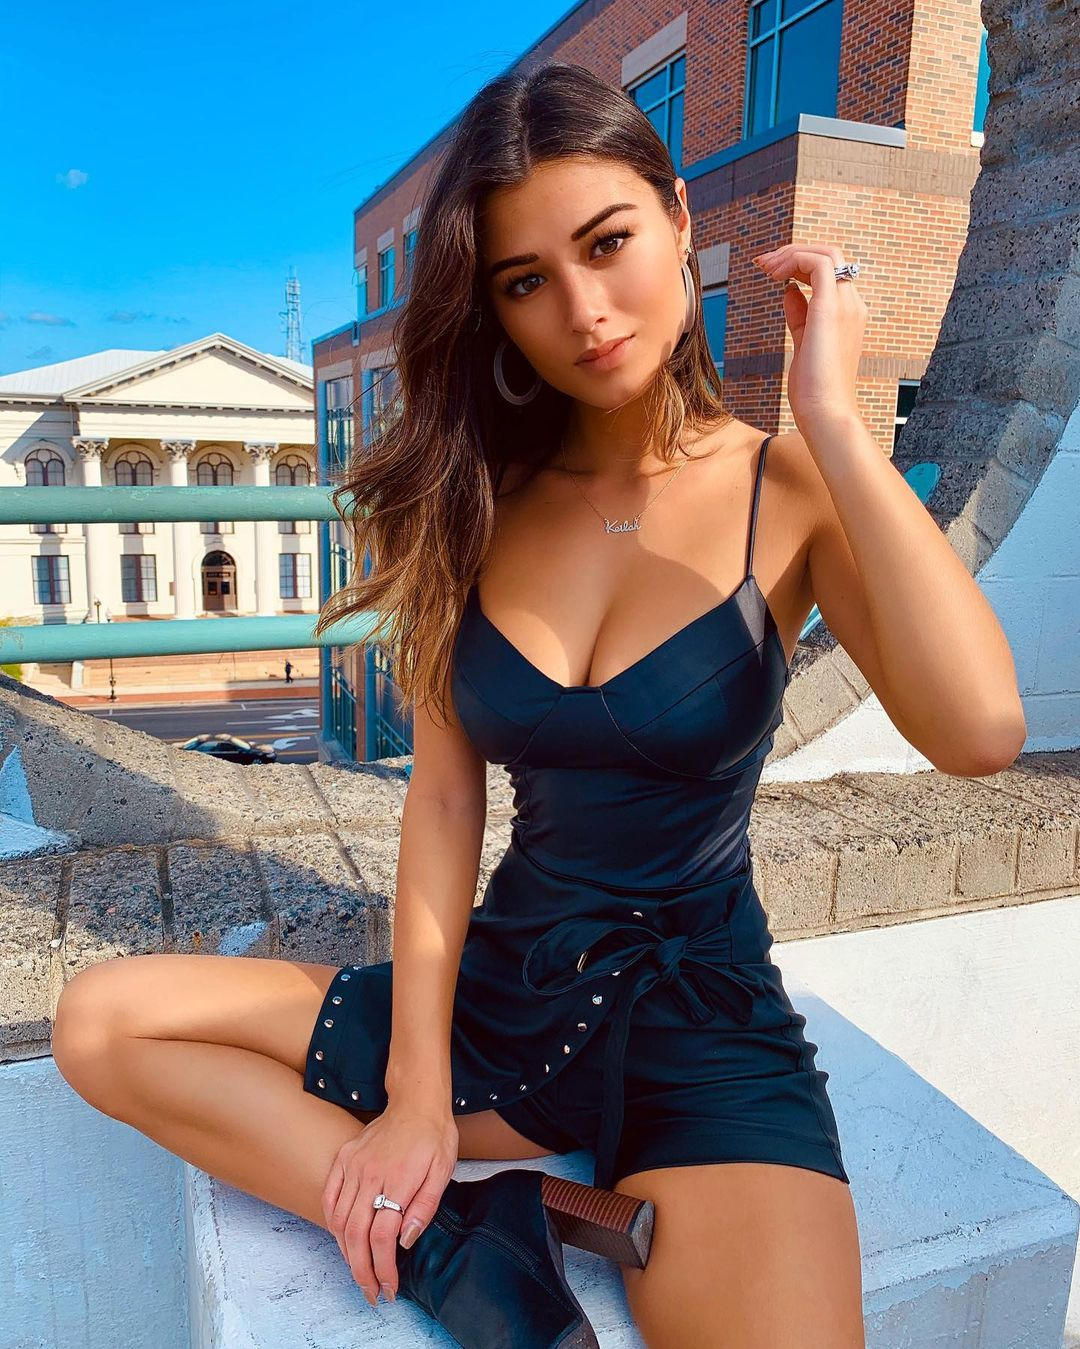 Who is Keilah Kang The Impressive Beauty of Modeling 4